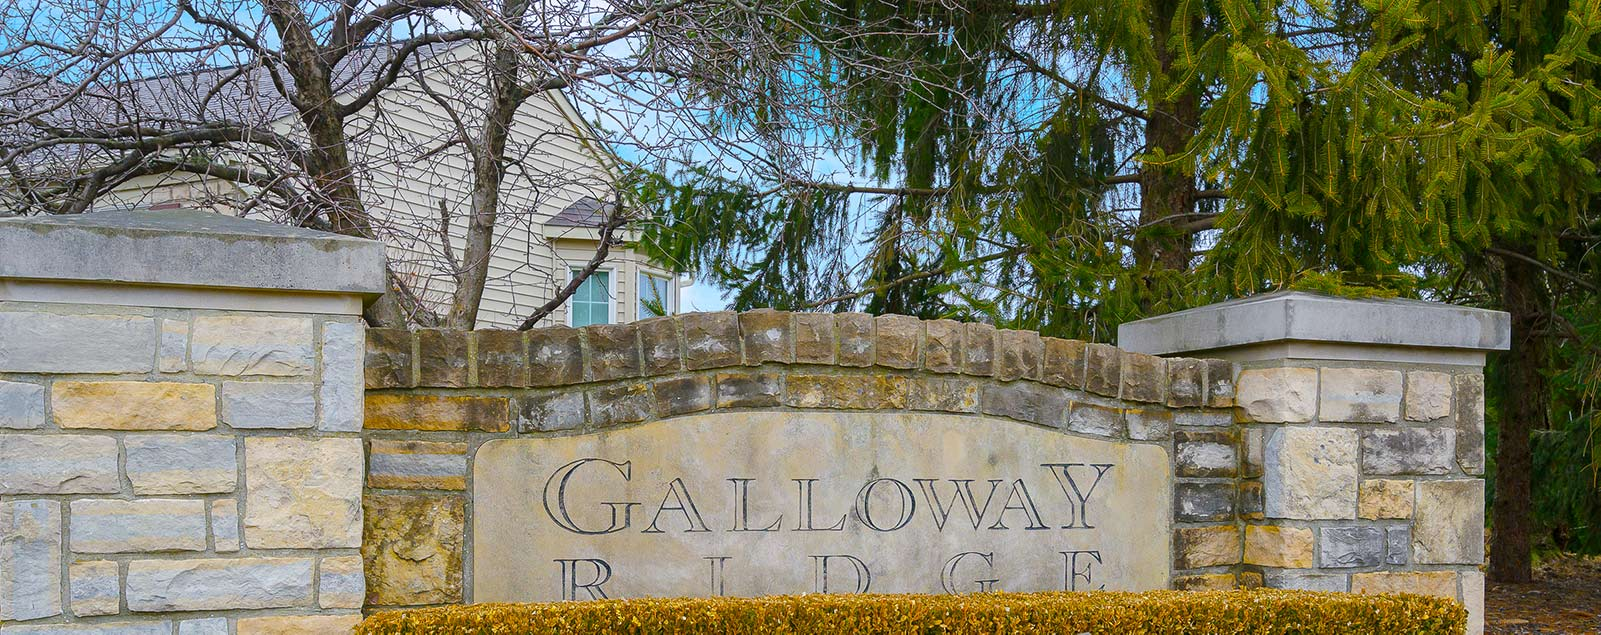 Welcome to Galloway, Ohio! Image Courtesy of The Columbus Team.